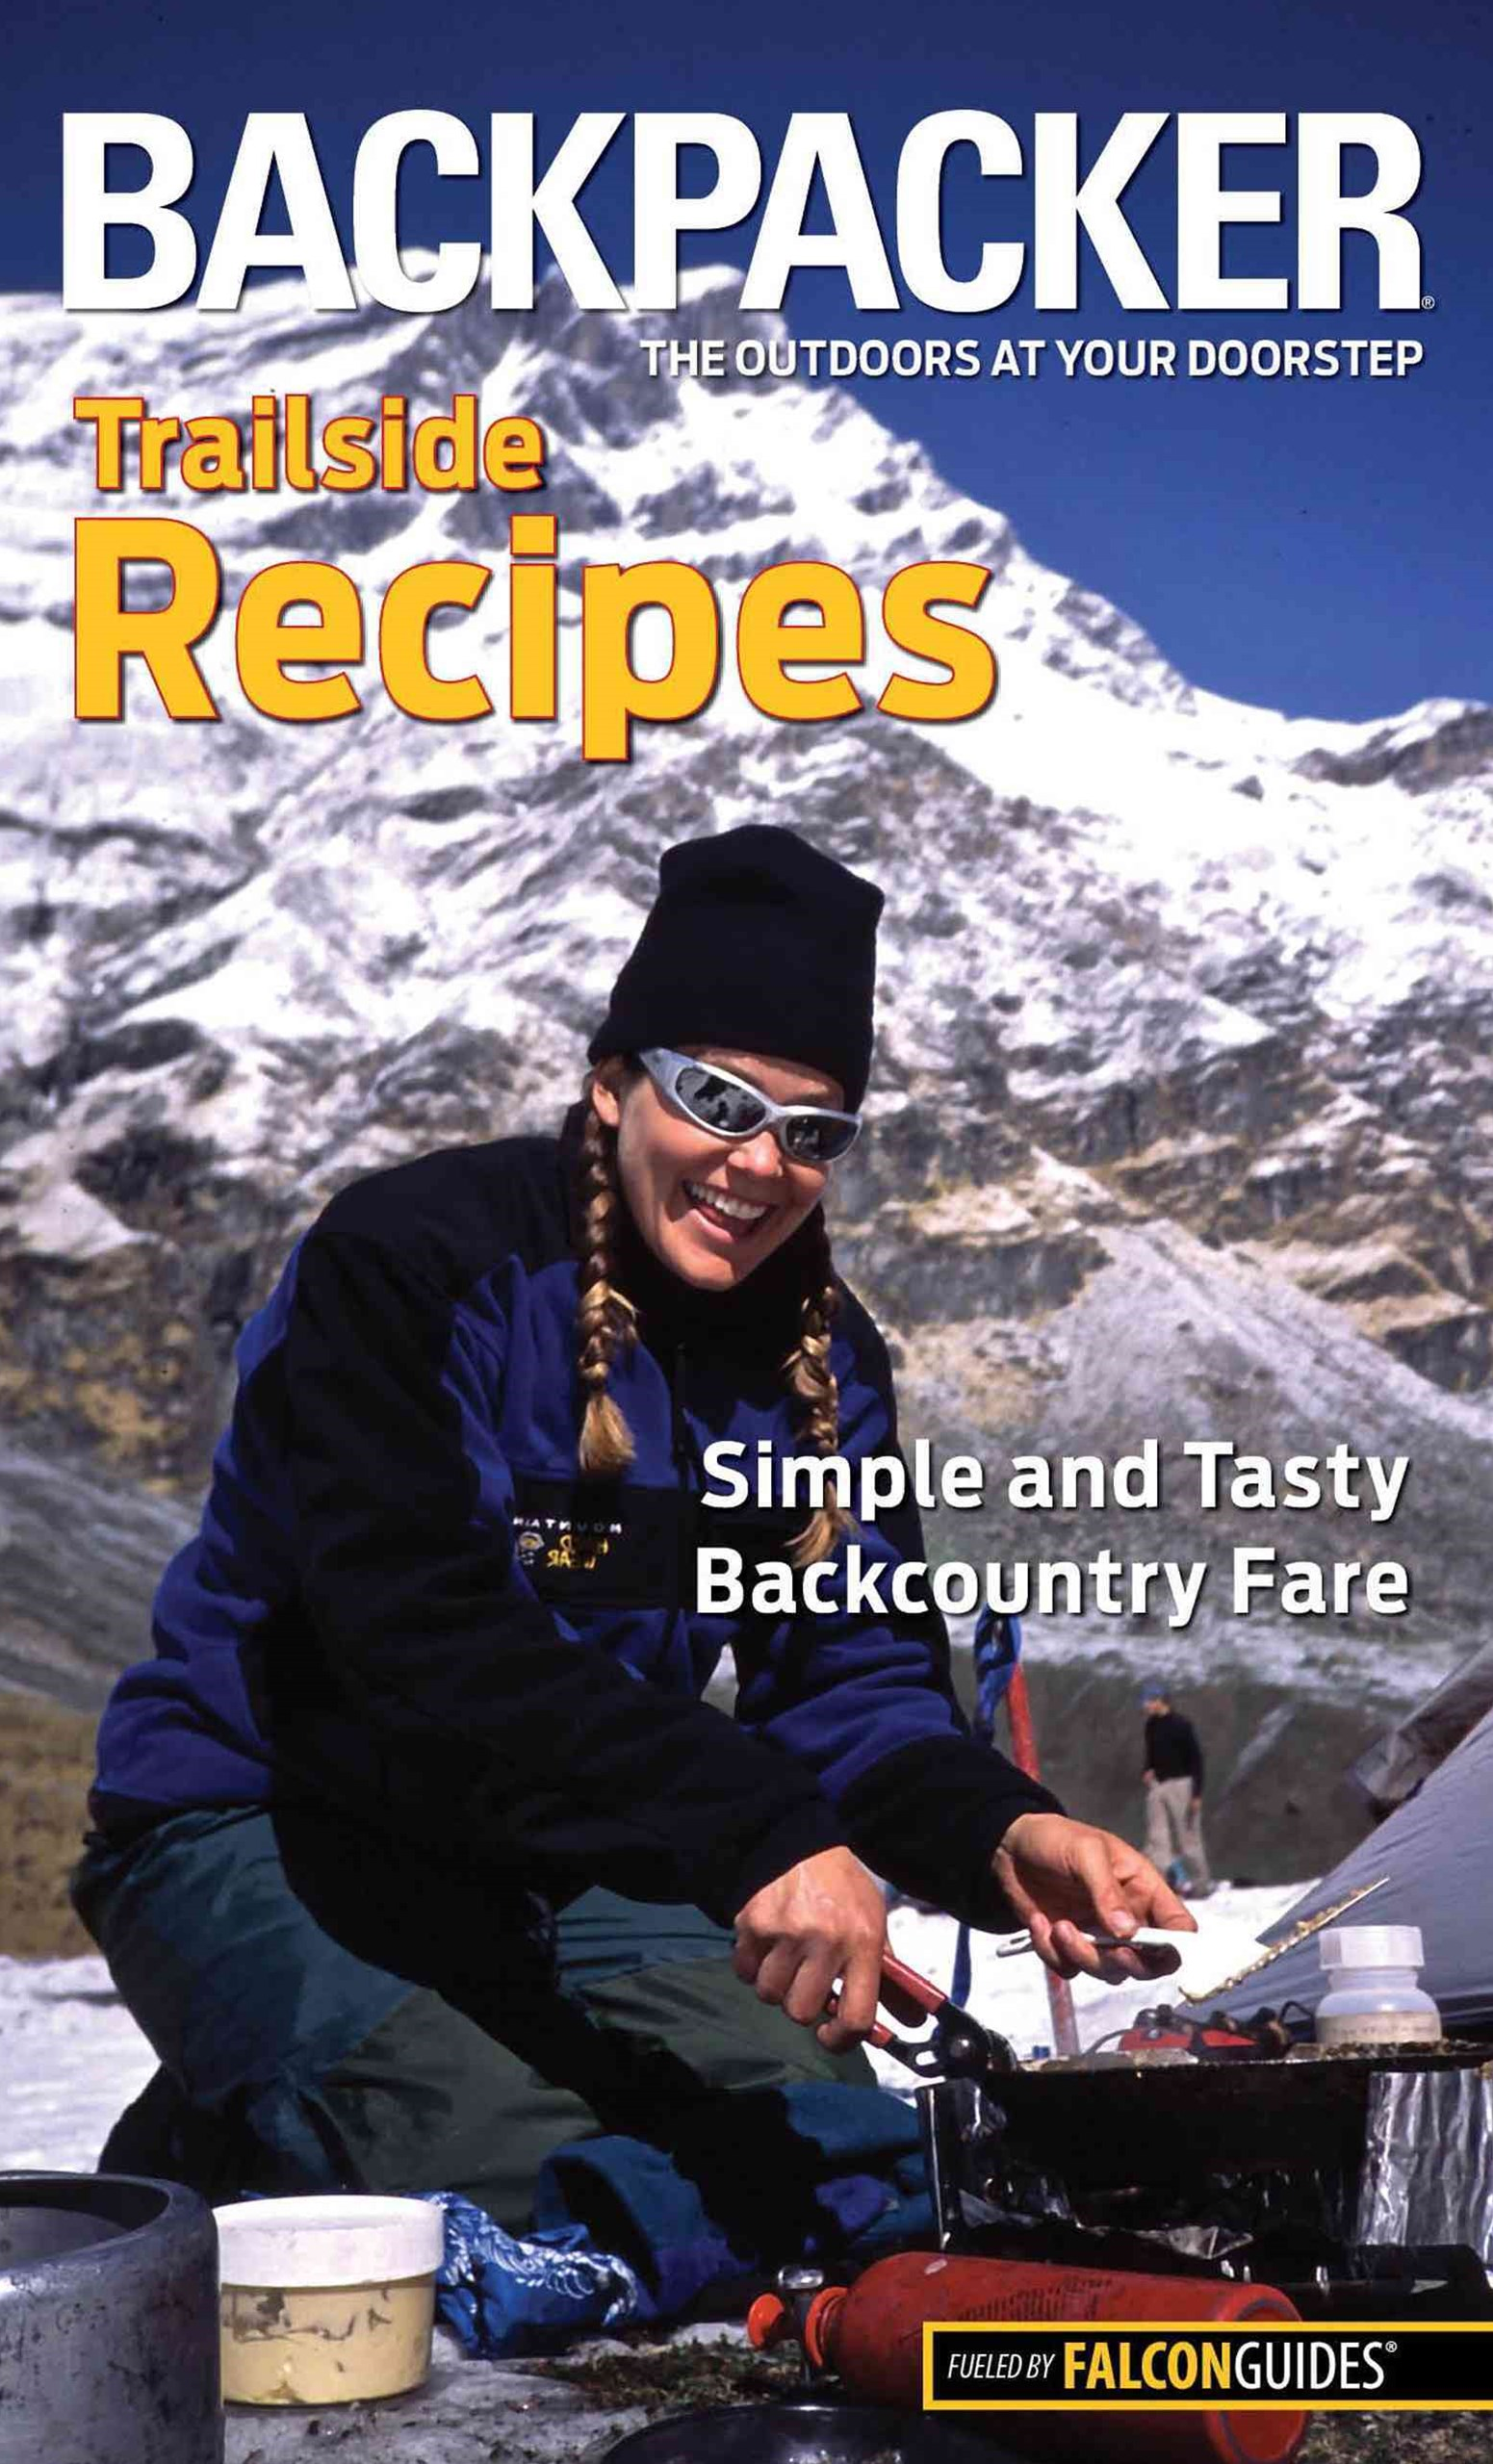 Backpacker Magazine's Trailside Recipes